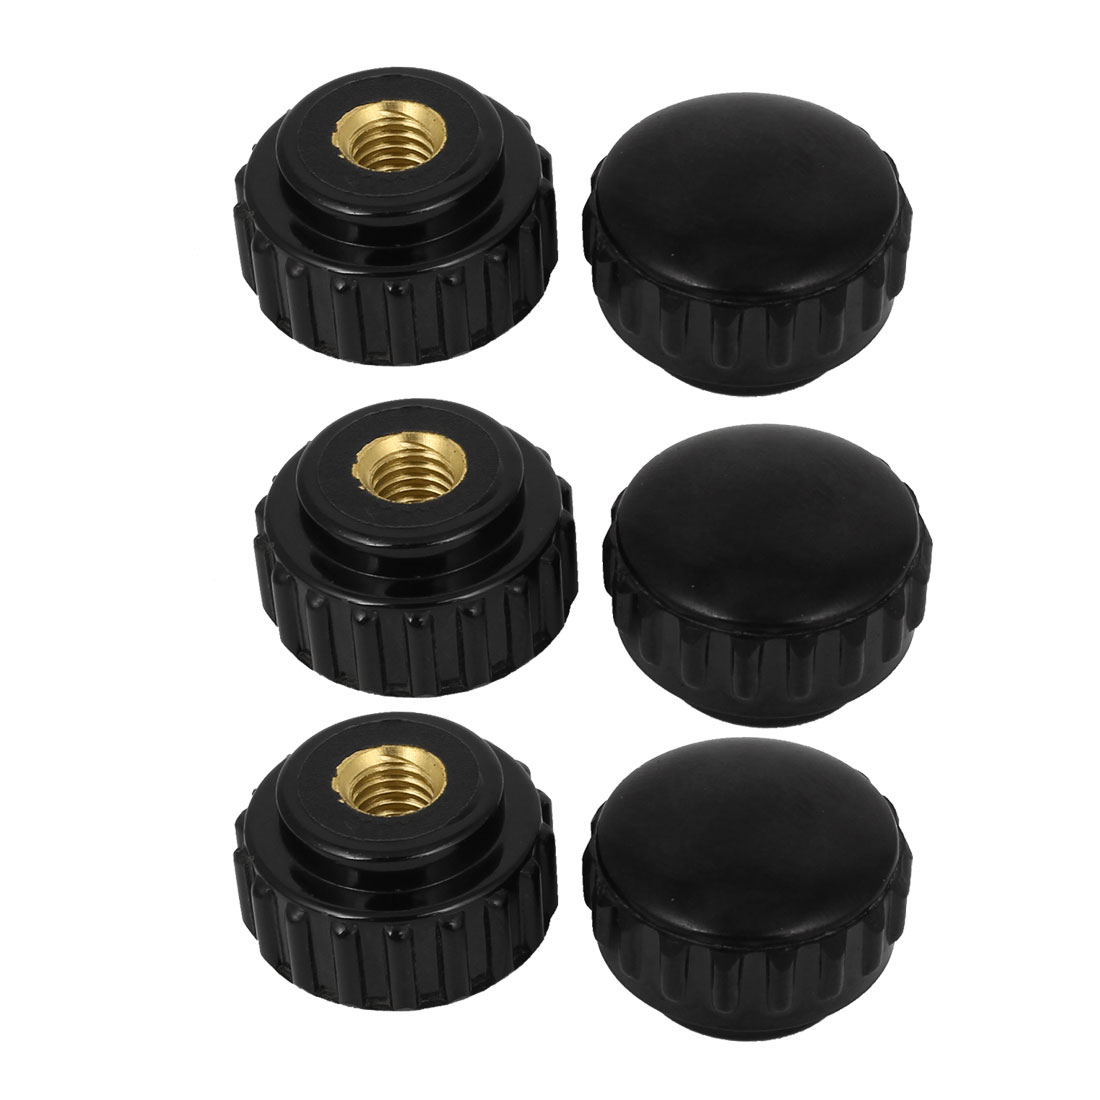 Round Shaped 1/16PT Female Thread Dia Brass Core Black Plastic Screw Knob 6pcs